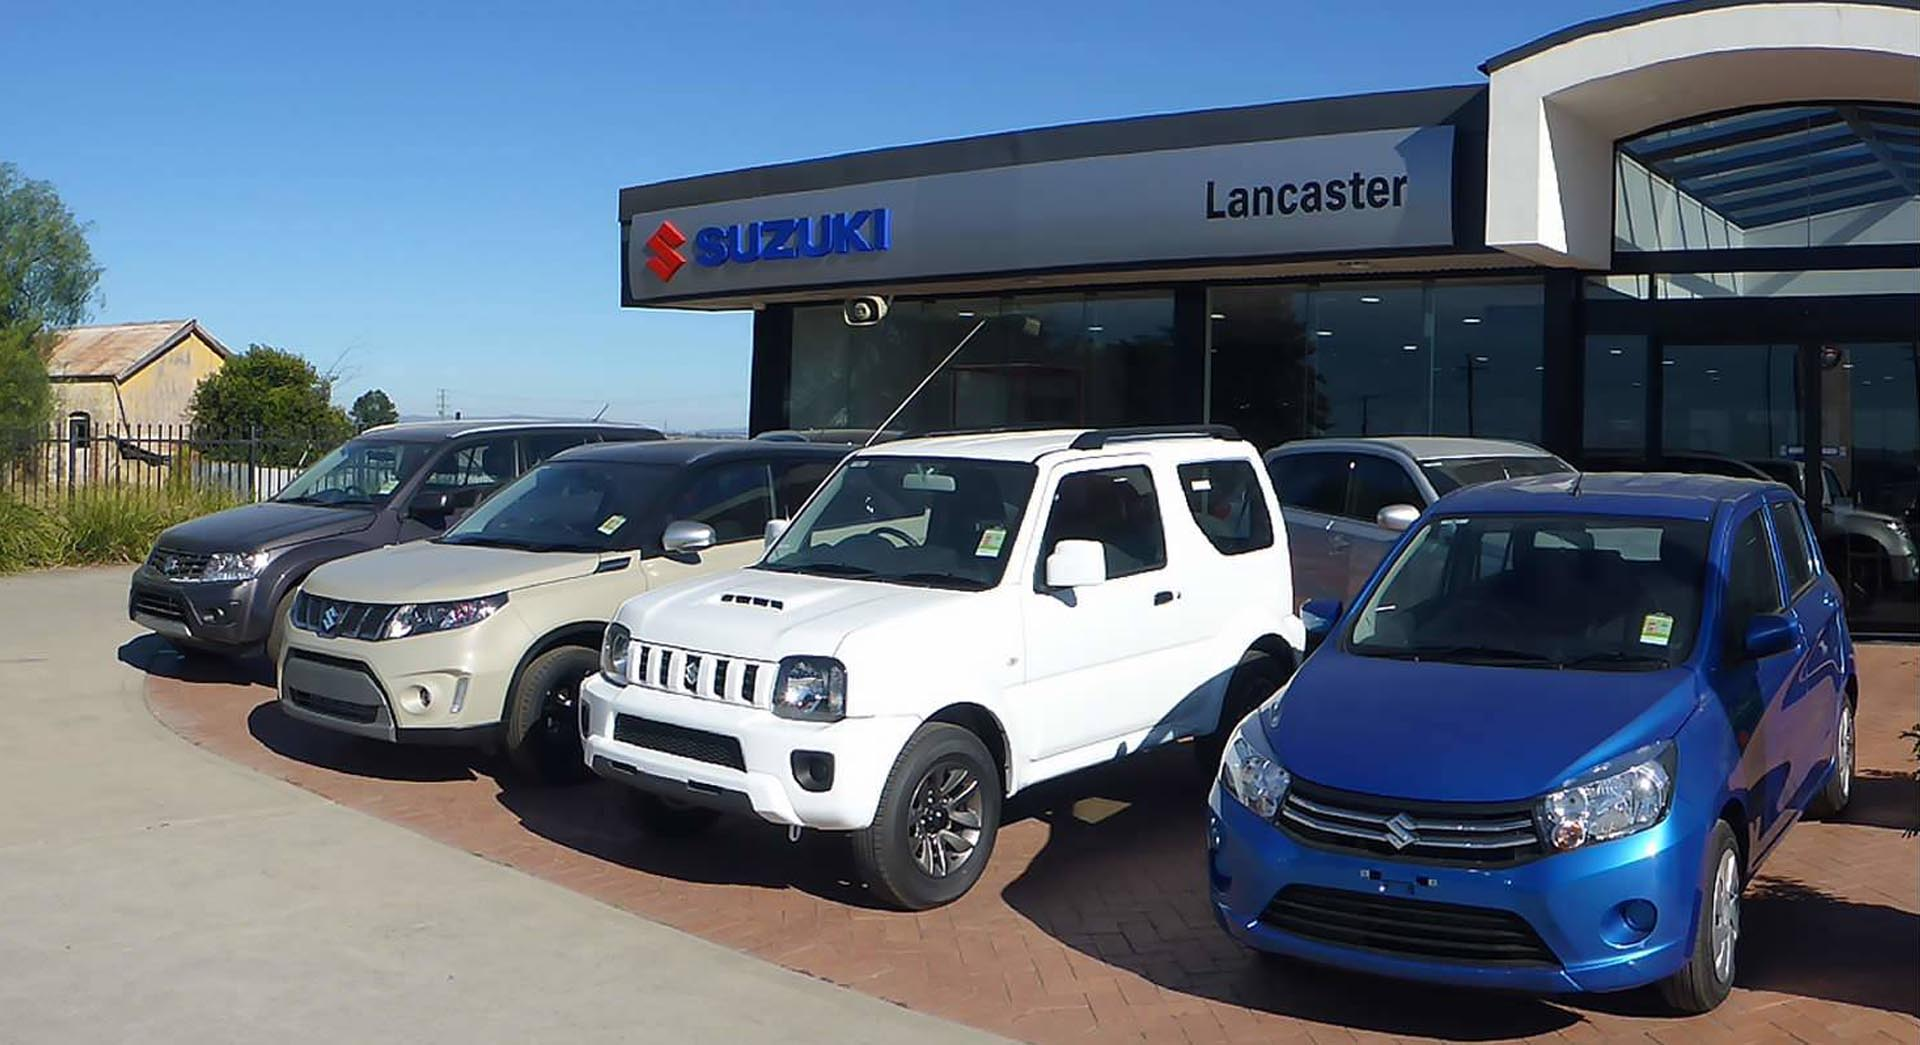 LancasterSuzuki-HB1-May16-AN